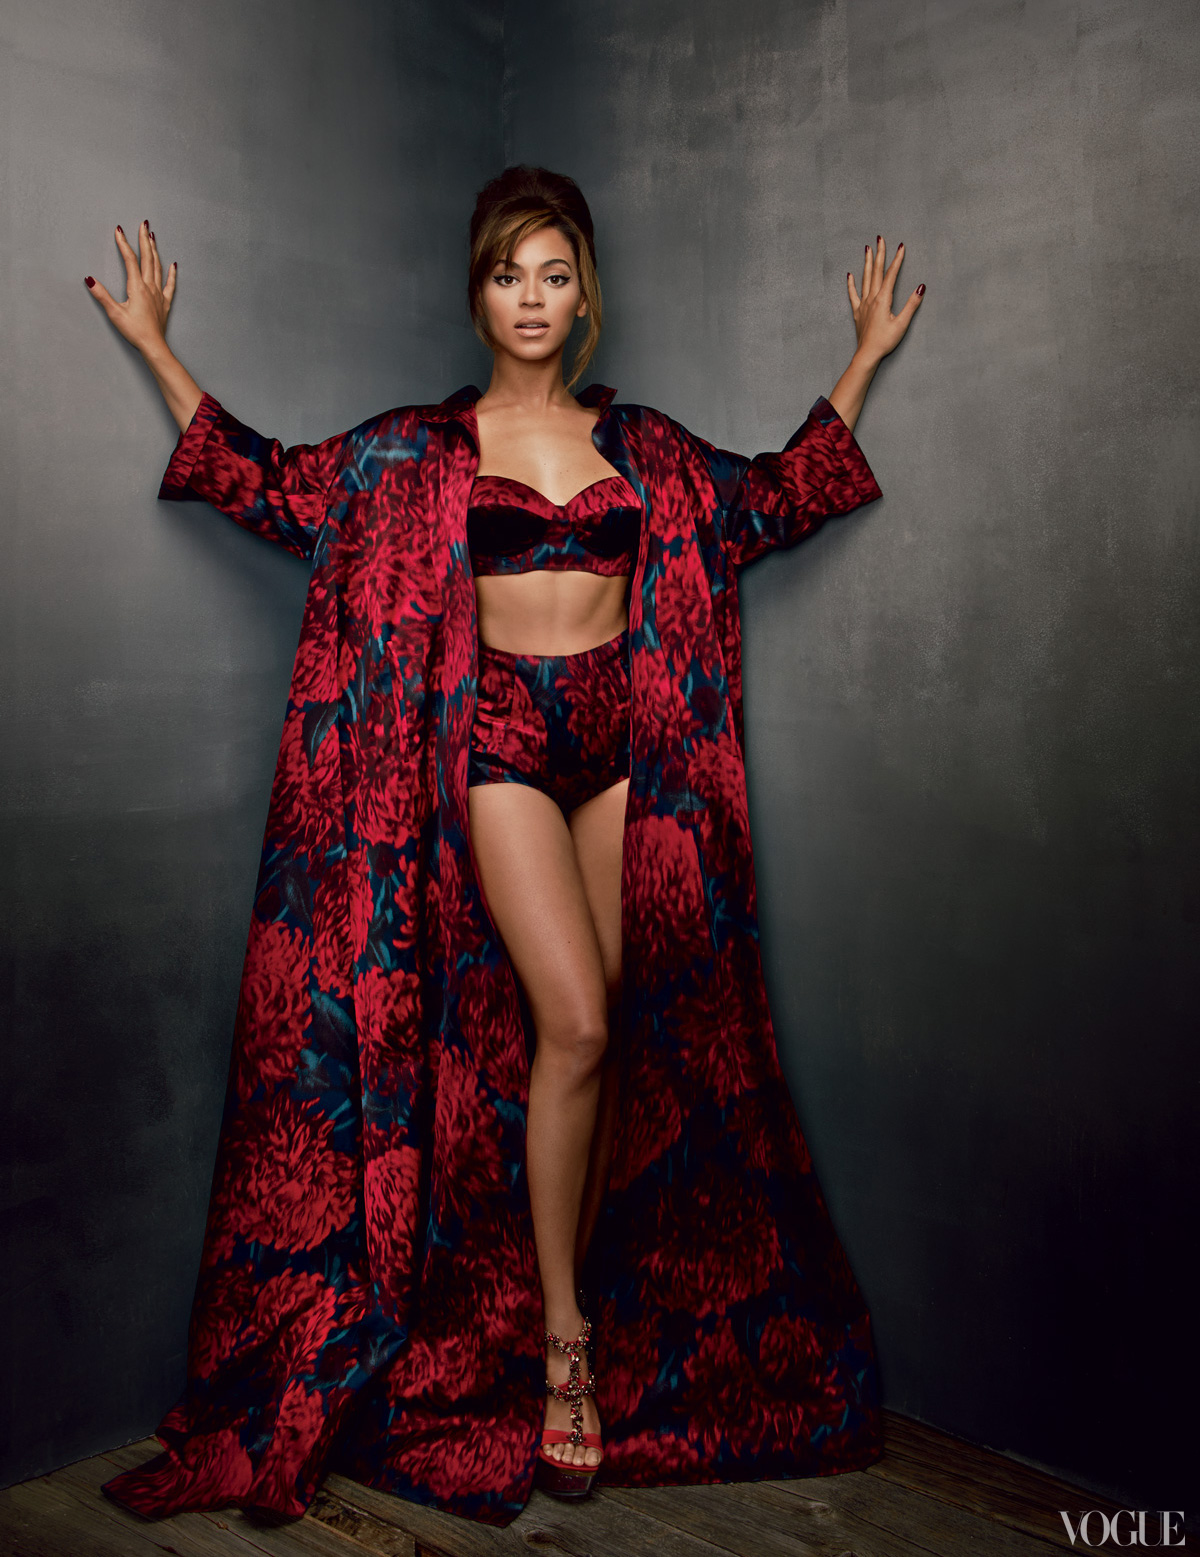 beyonce vogue 2013 4 Hot Shots: Beyonces Full Vogue Shoot Unveiled